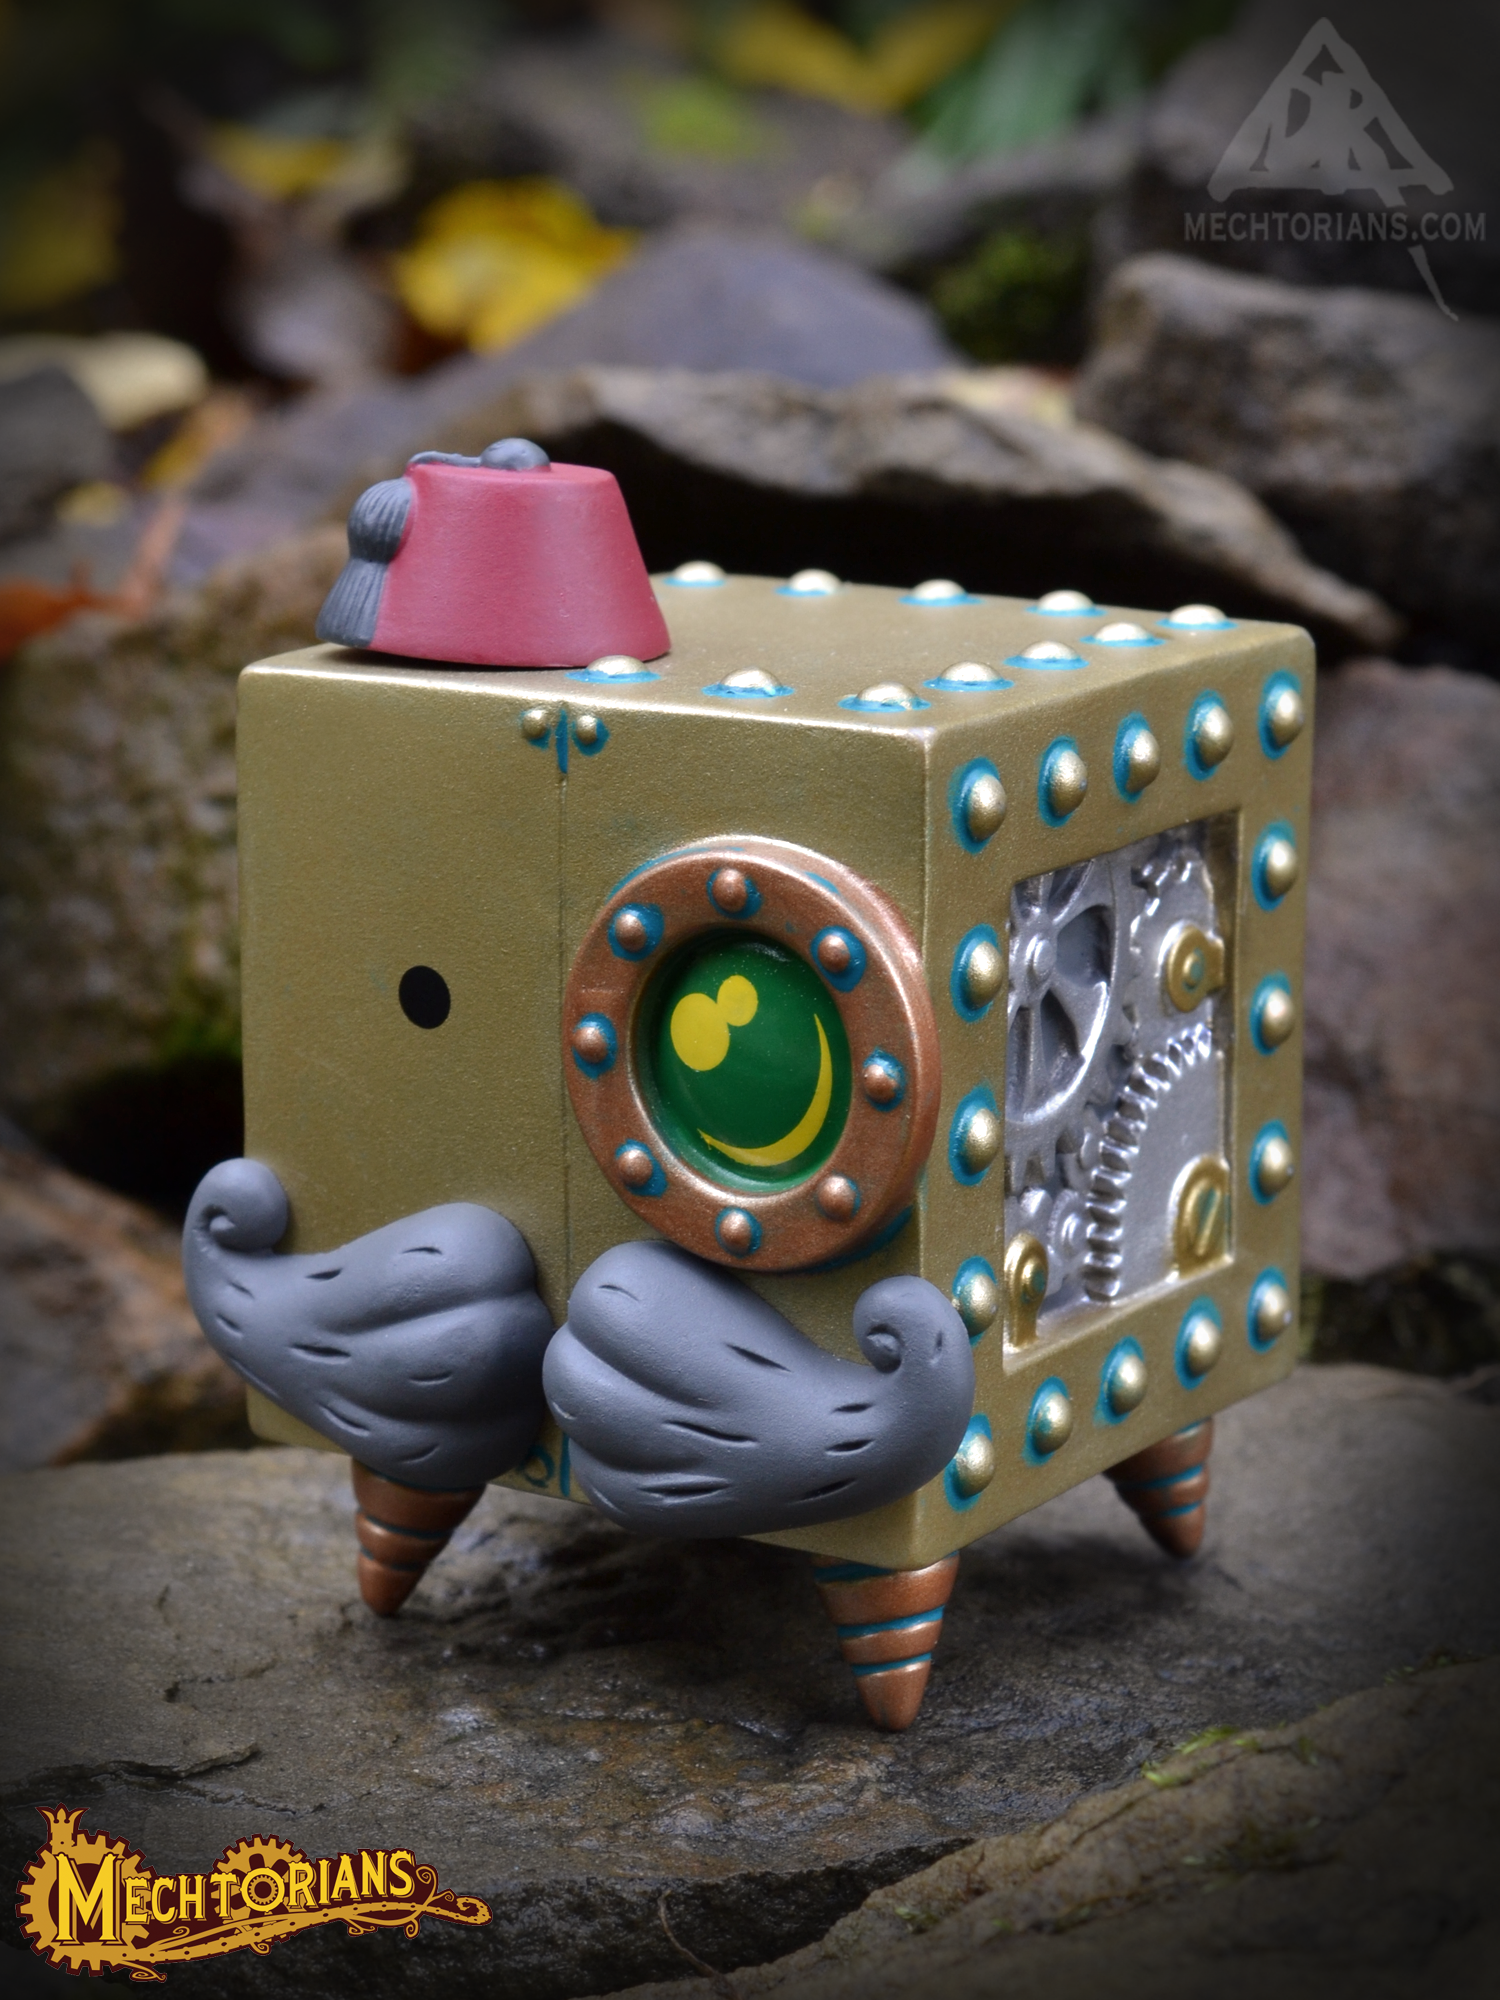 Doktor A's Mini Mechtorians vinyl figure Series 2 with Kidrobot. Colonel Rombus